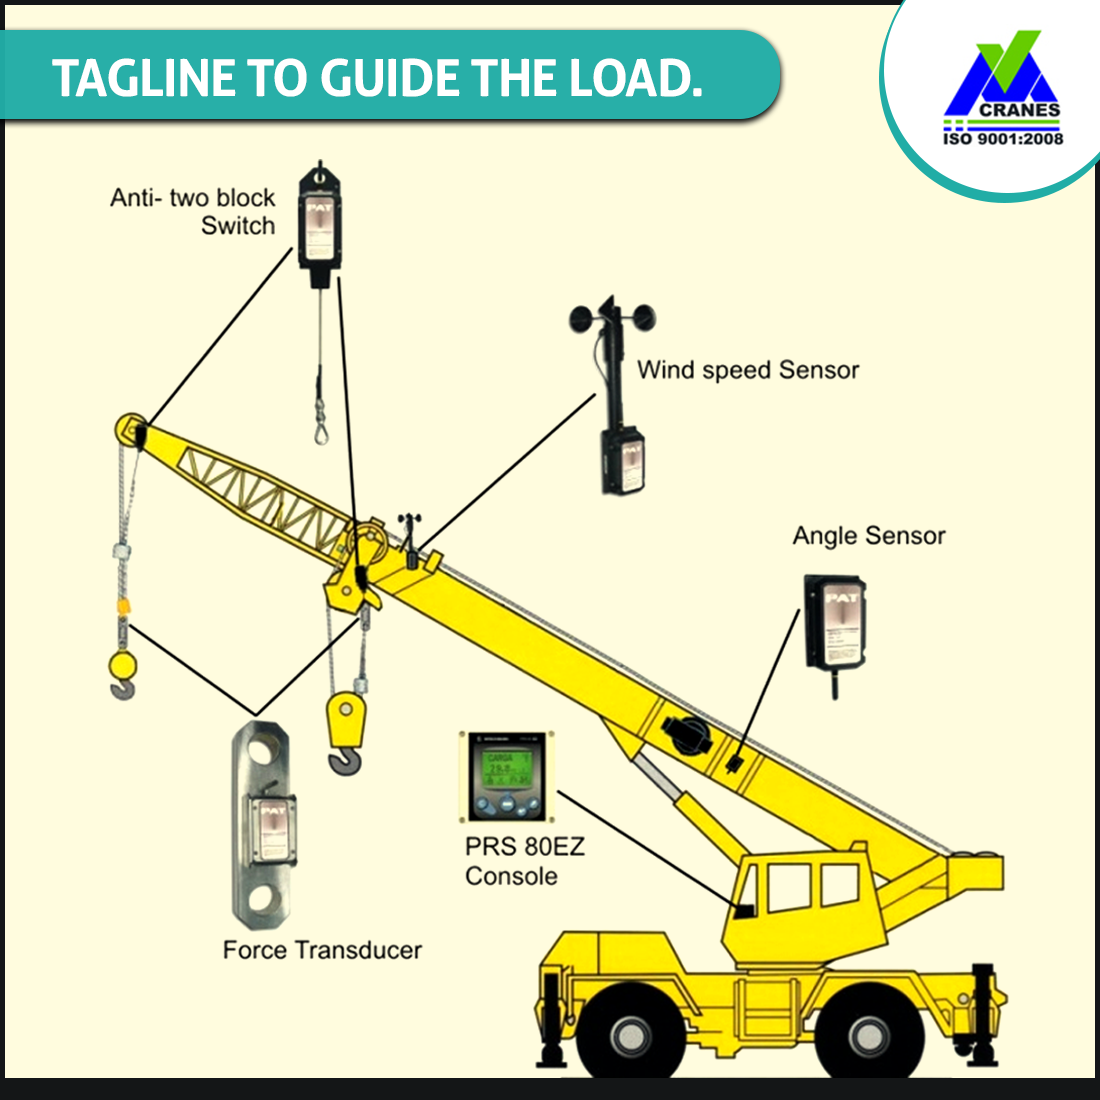 medium resolution of usage of tagline to guide the load load to be handled smoothly cranessafety safetyguide motivation vmecranes vmengineers